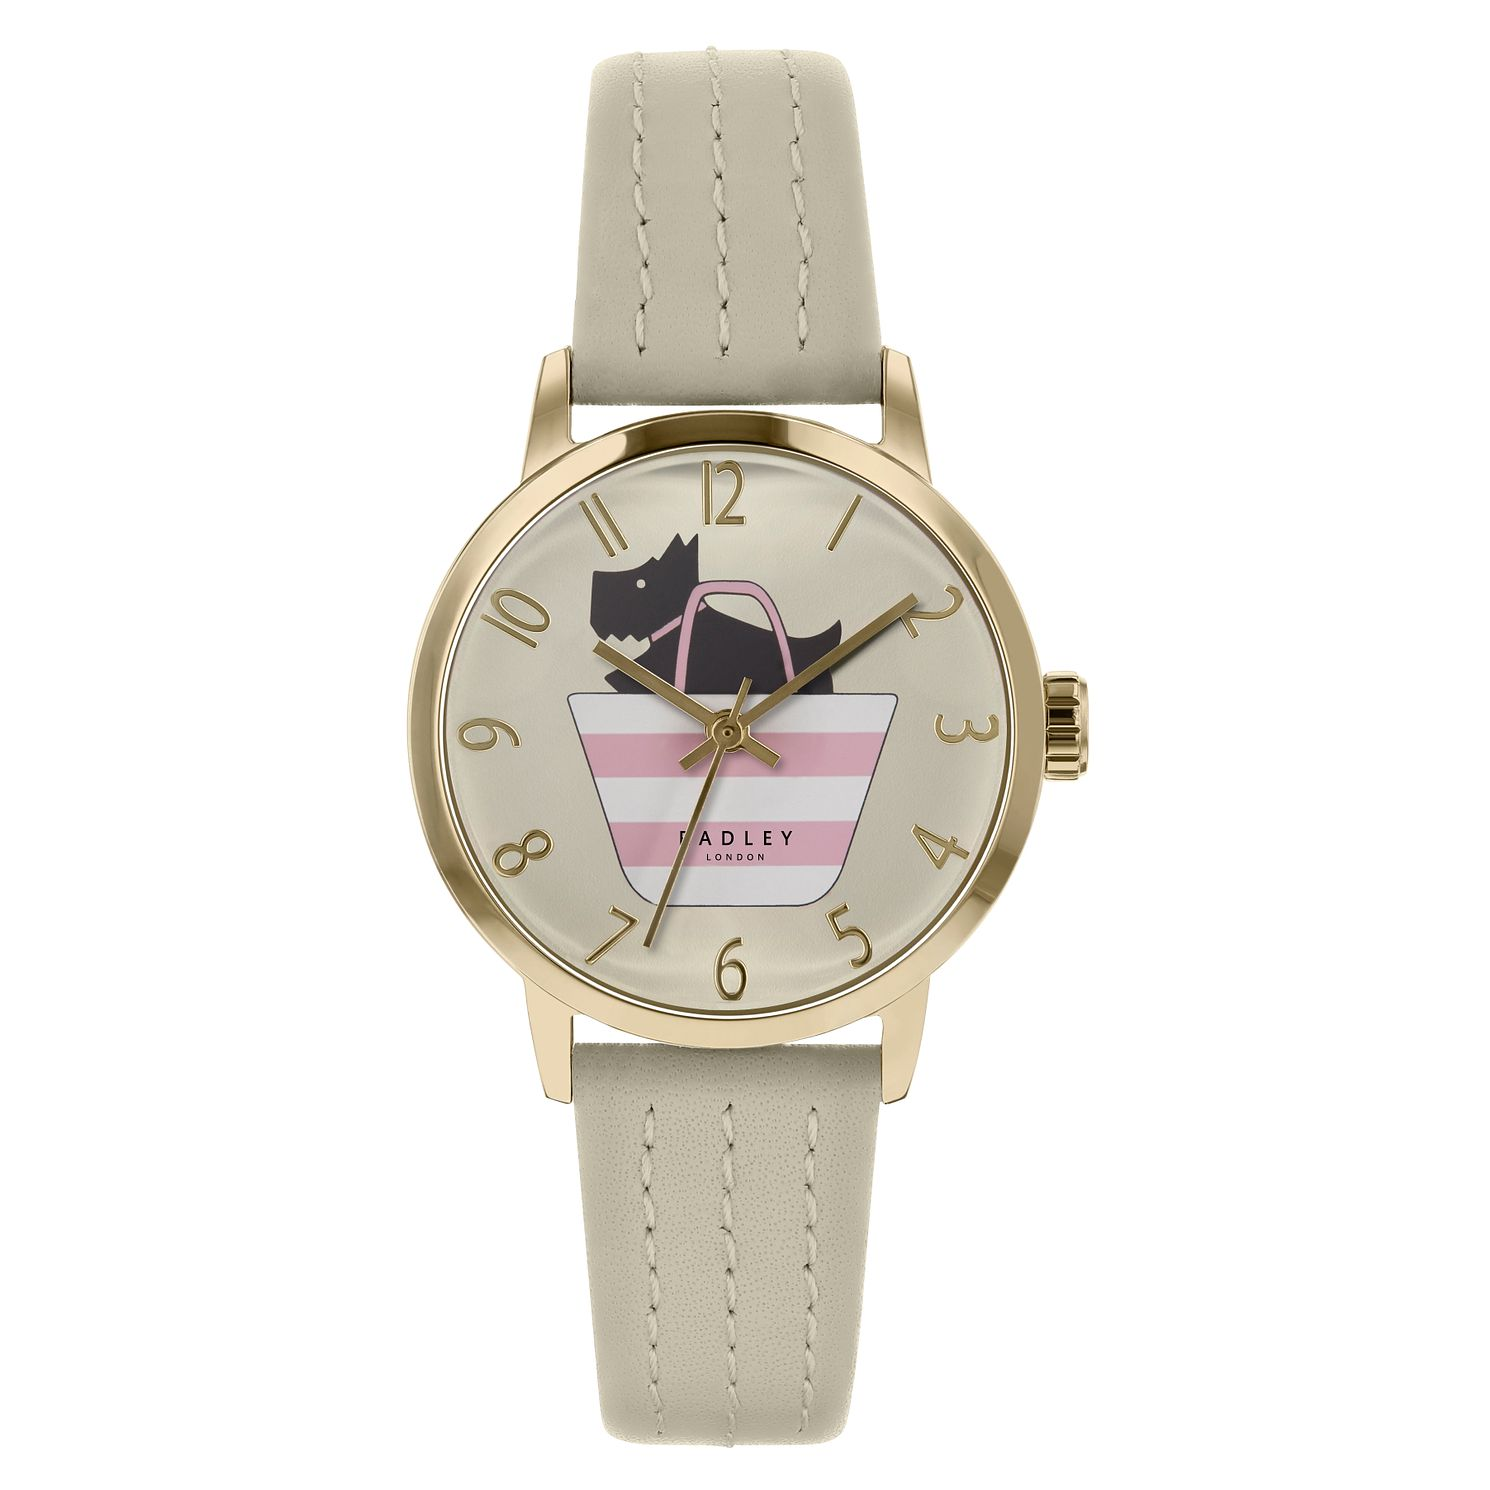 Radley Dog In A Bag Ladies' Beige Leather Strap Watch - Product number 3296822